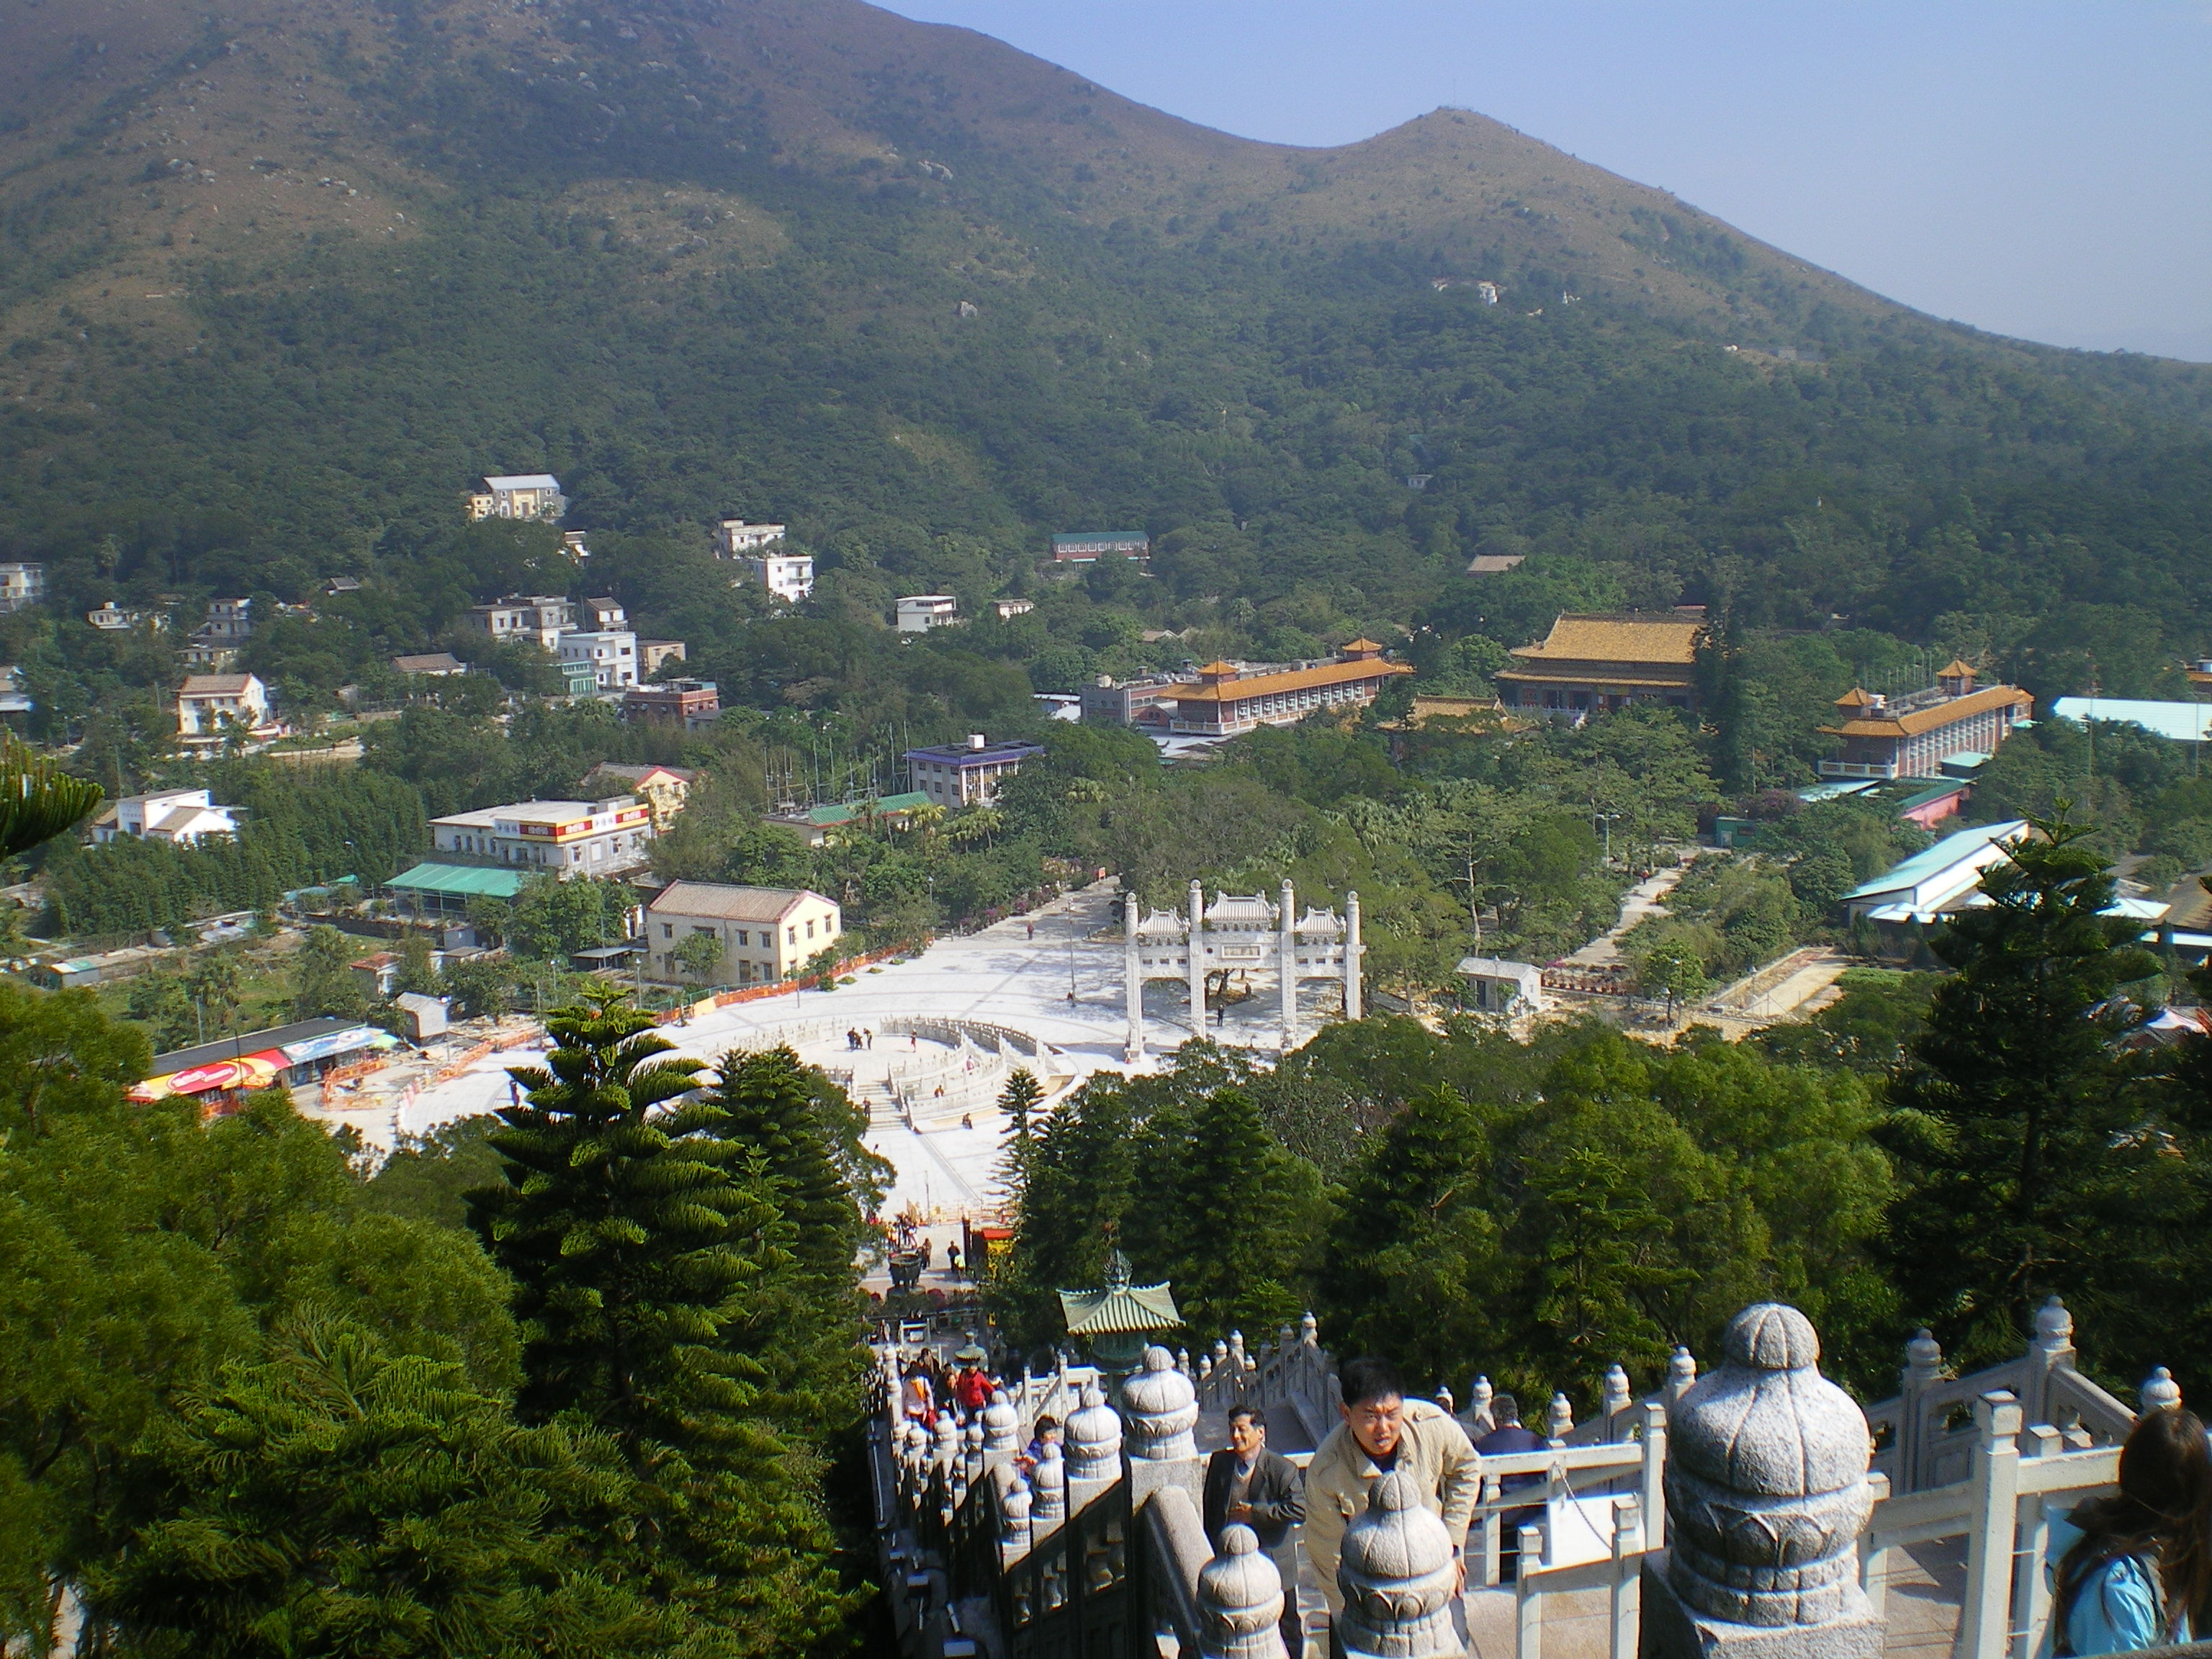 The extended rooftops surrounding the Giant Buddha in Lantau Island